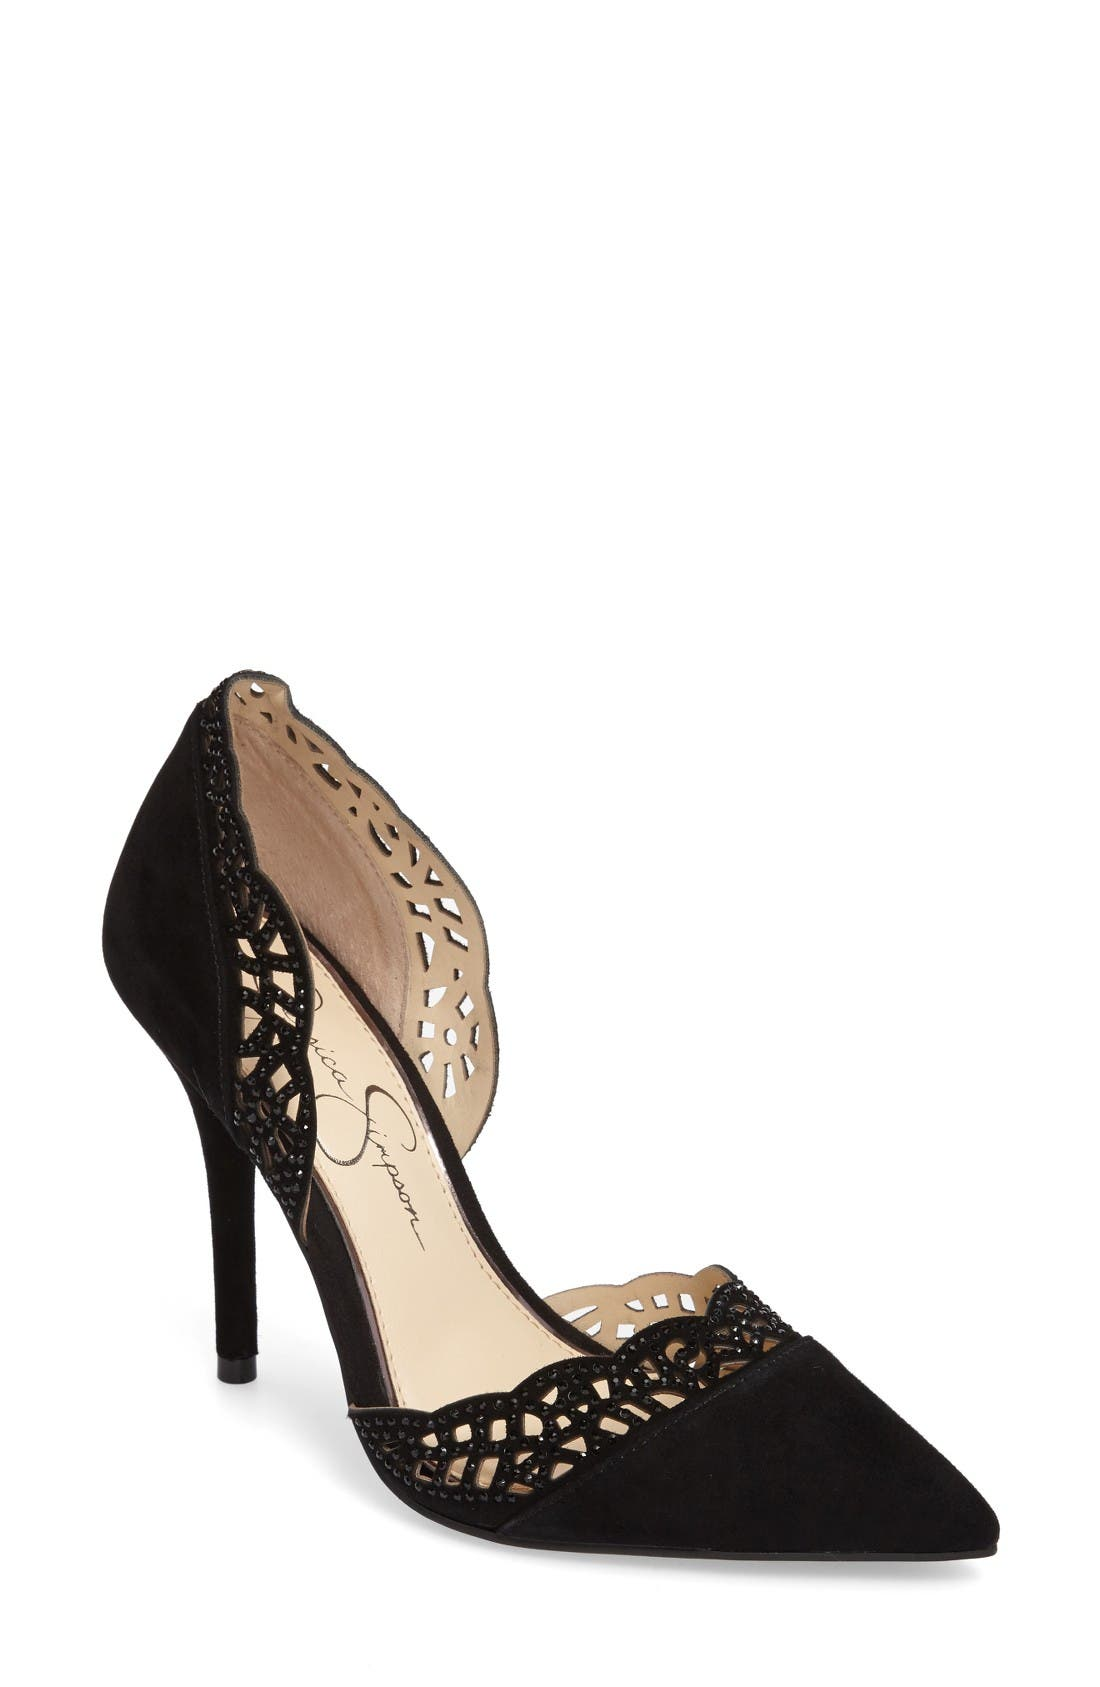 Alternate Image 1 Selected - Jessica Simpson Teriann d'Orsay Pump (Women)